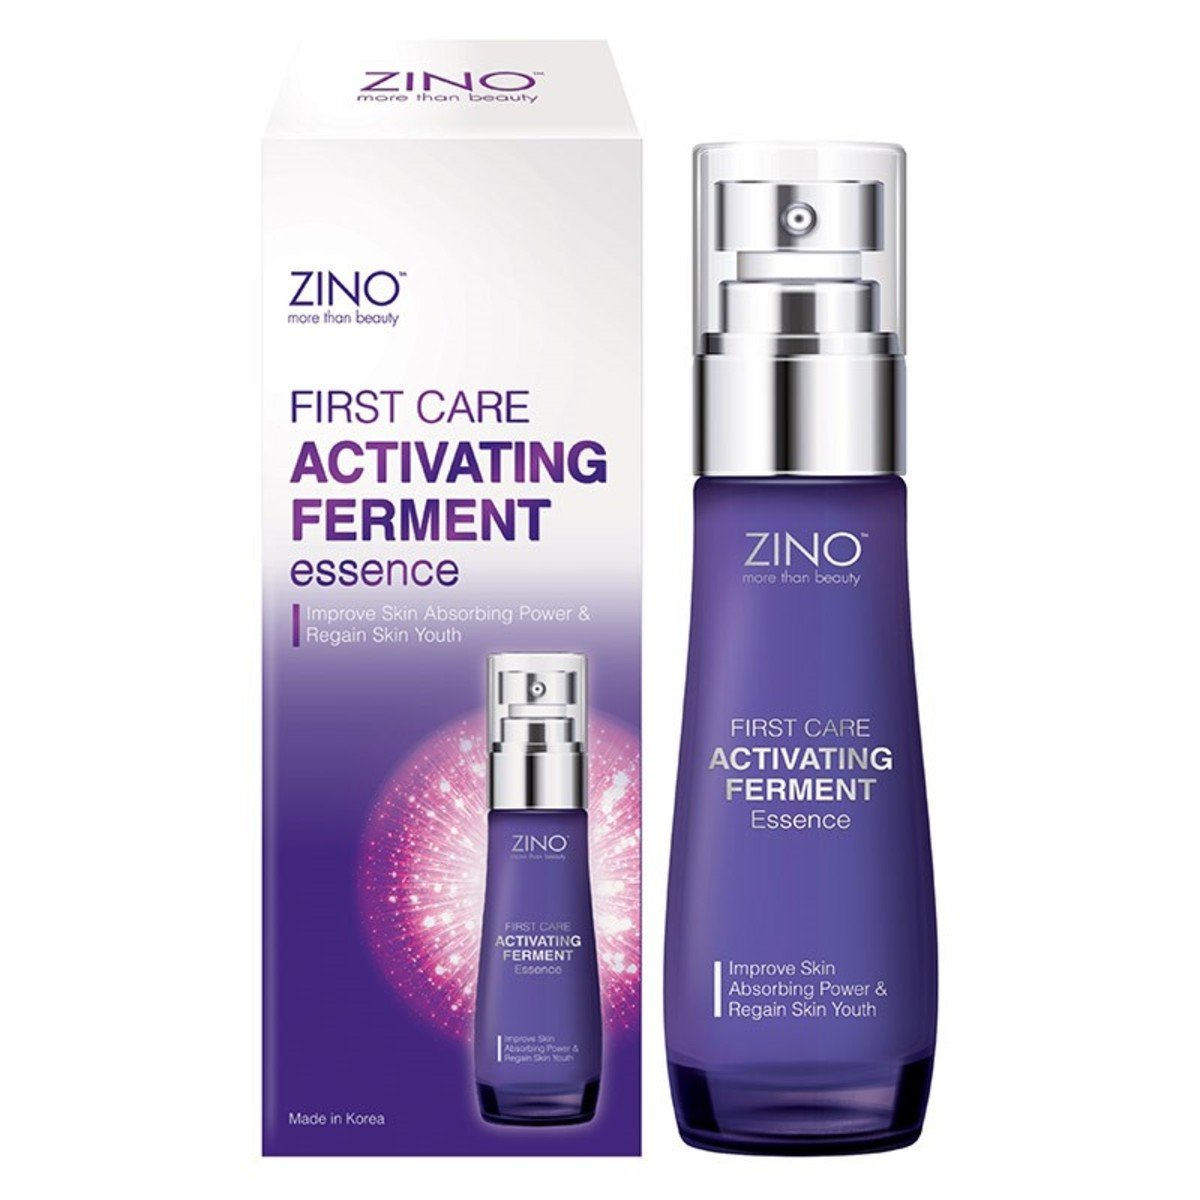 First Care Activating Ferment Essence